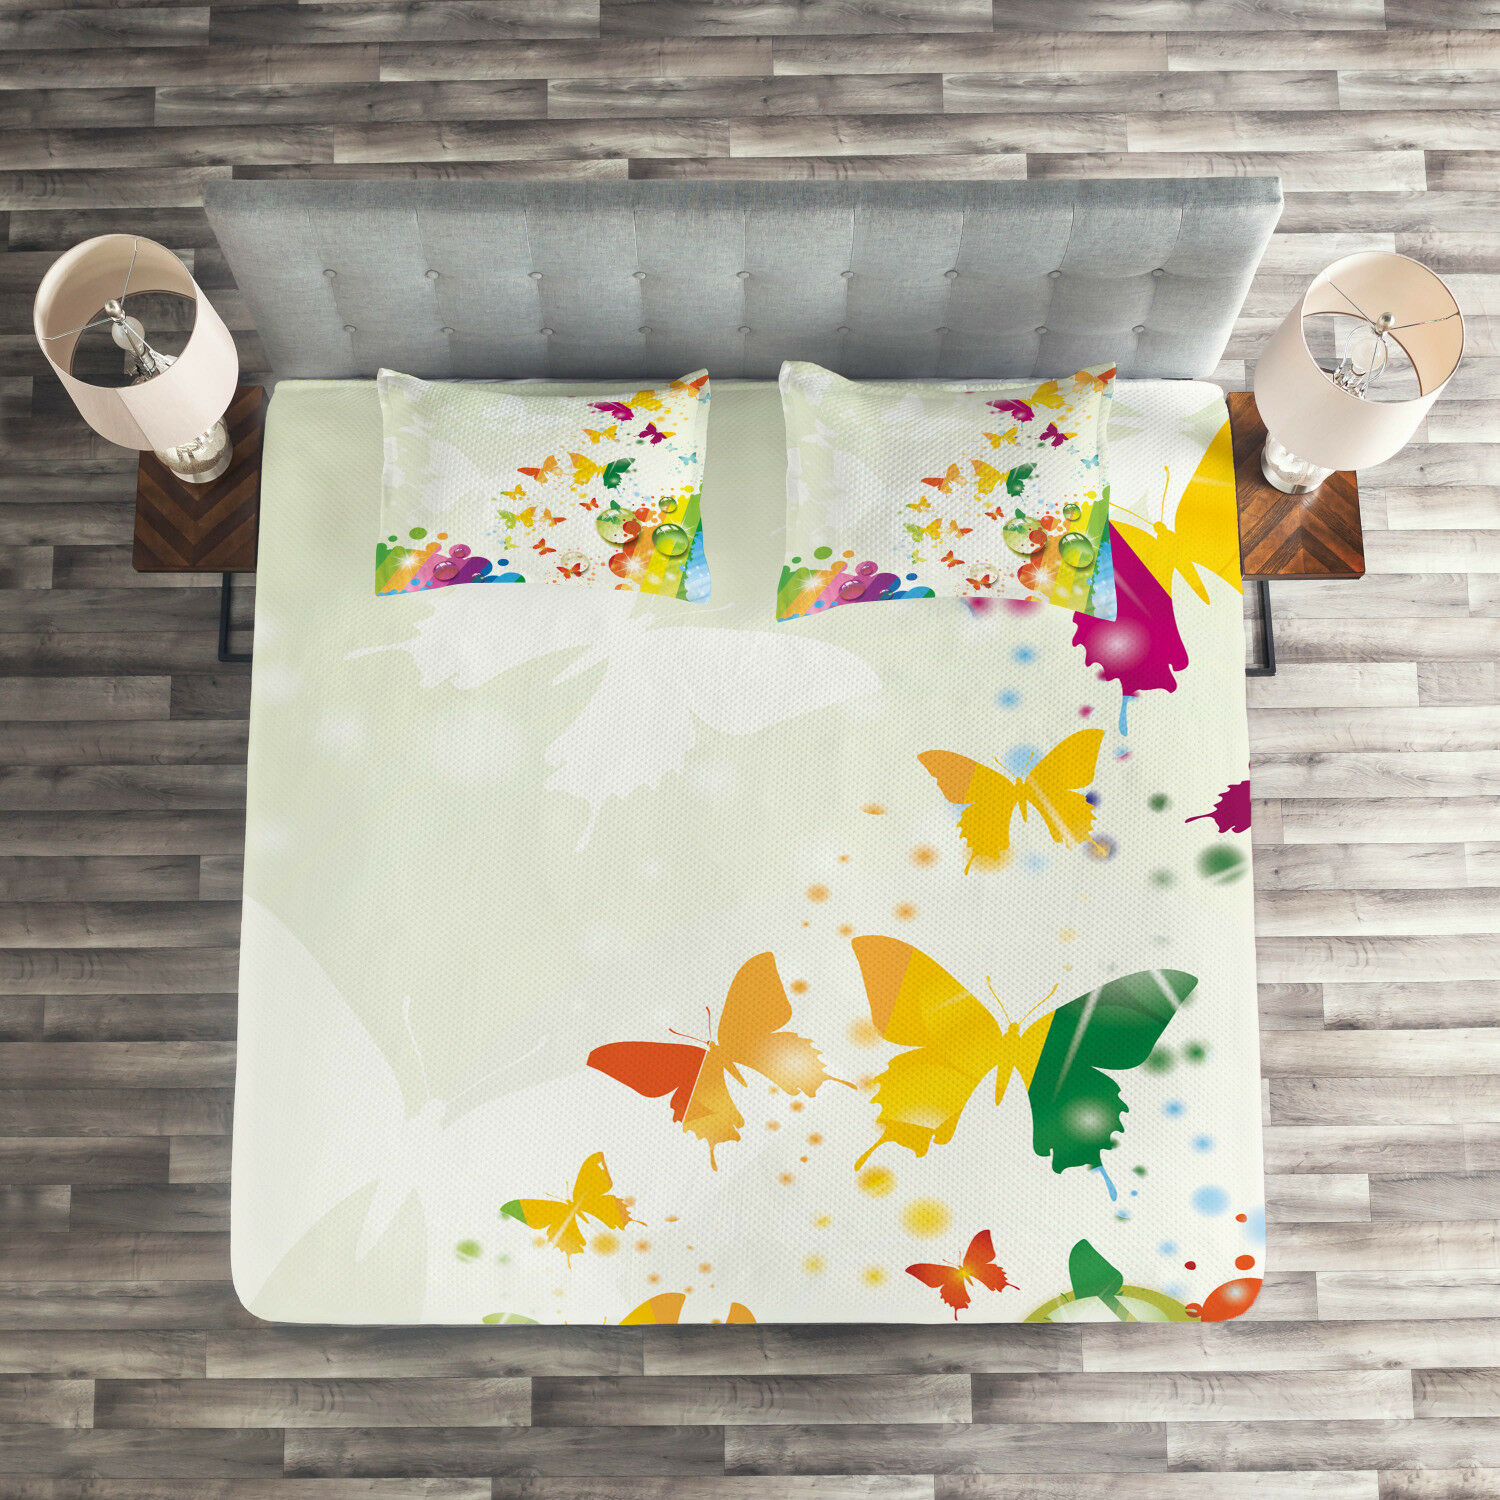 Nature Quilted Coverlet & Pillow Shams Set, Butterfly Festival Art Print